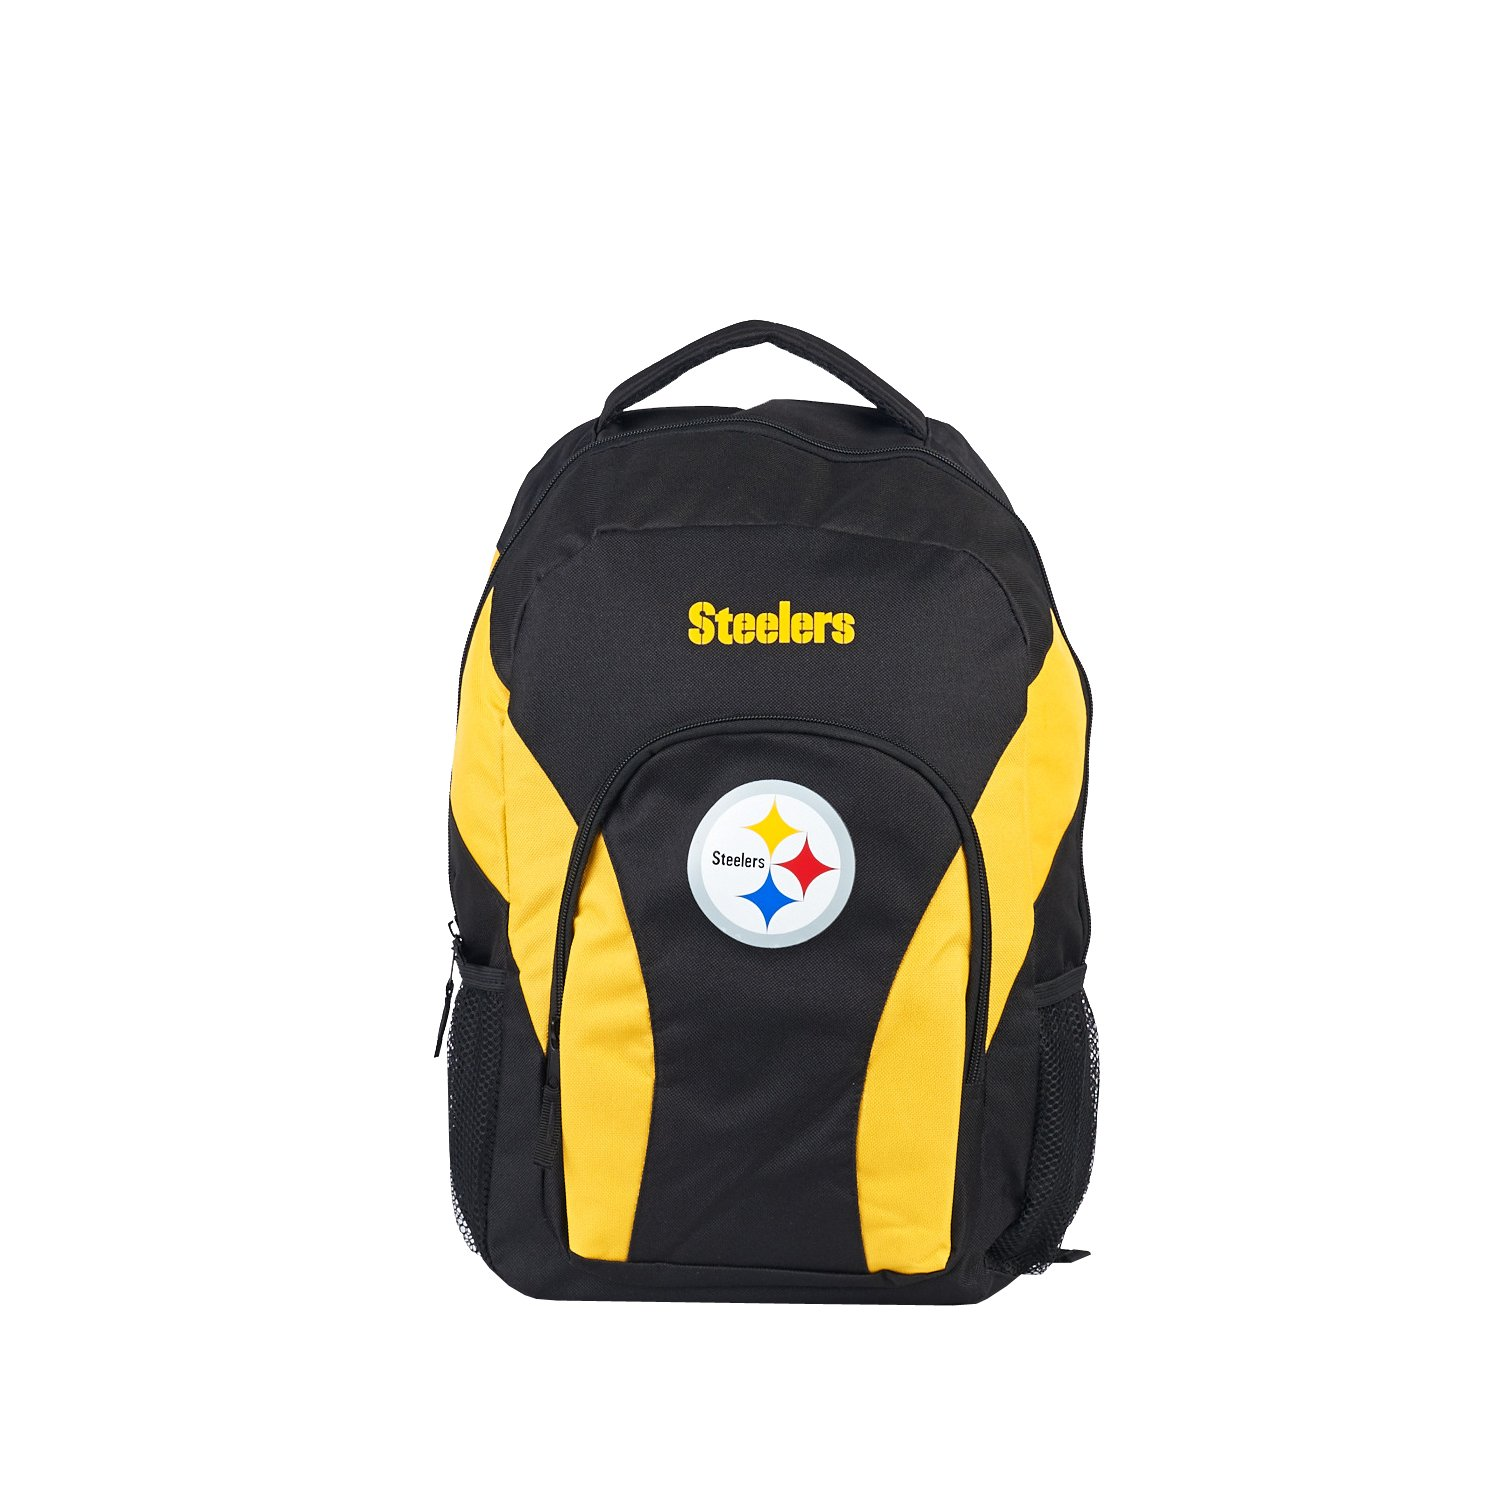 Amazon.com : NFL Pittsburgh Steelers DraftDay Backpack, 18-Inch, Black : Sports & Outdoors